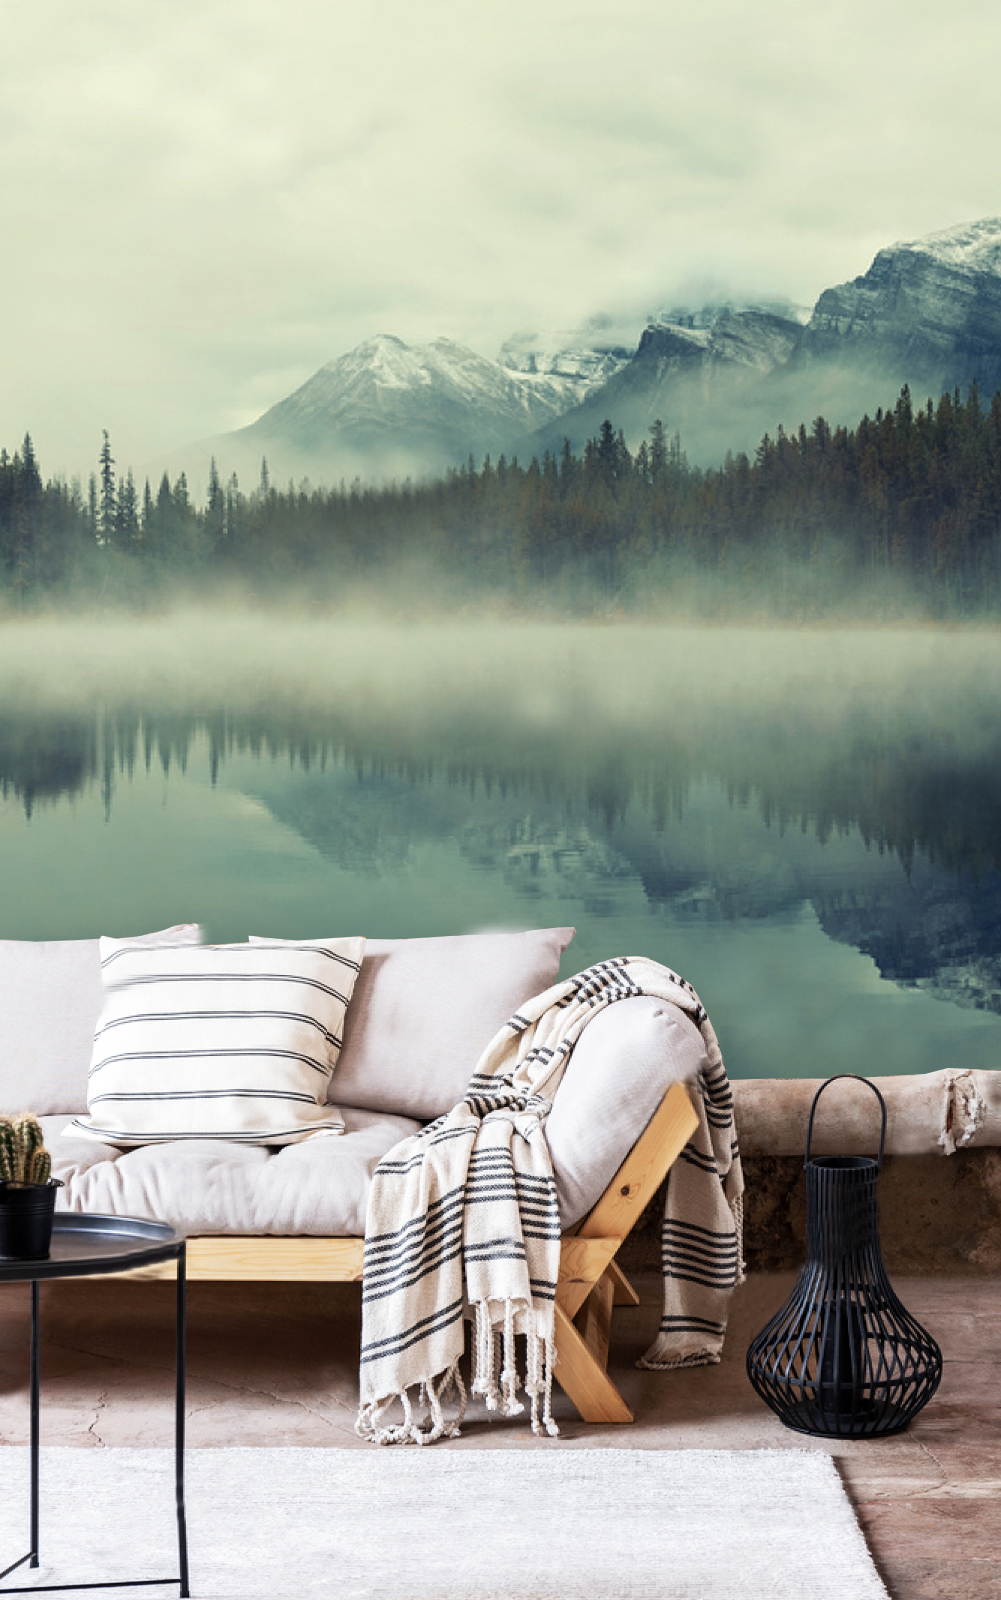 Wallpaper Fog In The Forest Mountain Lake Nature Wall Mural Peel And Stick Large Photo Removable Adhesive Vinyl